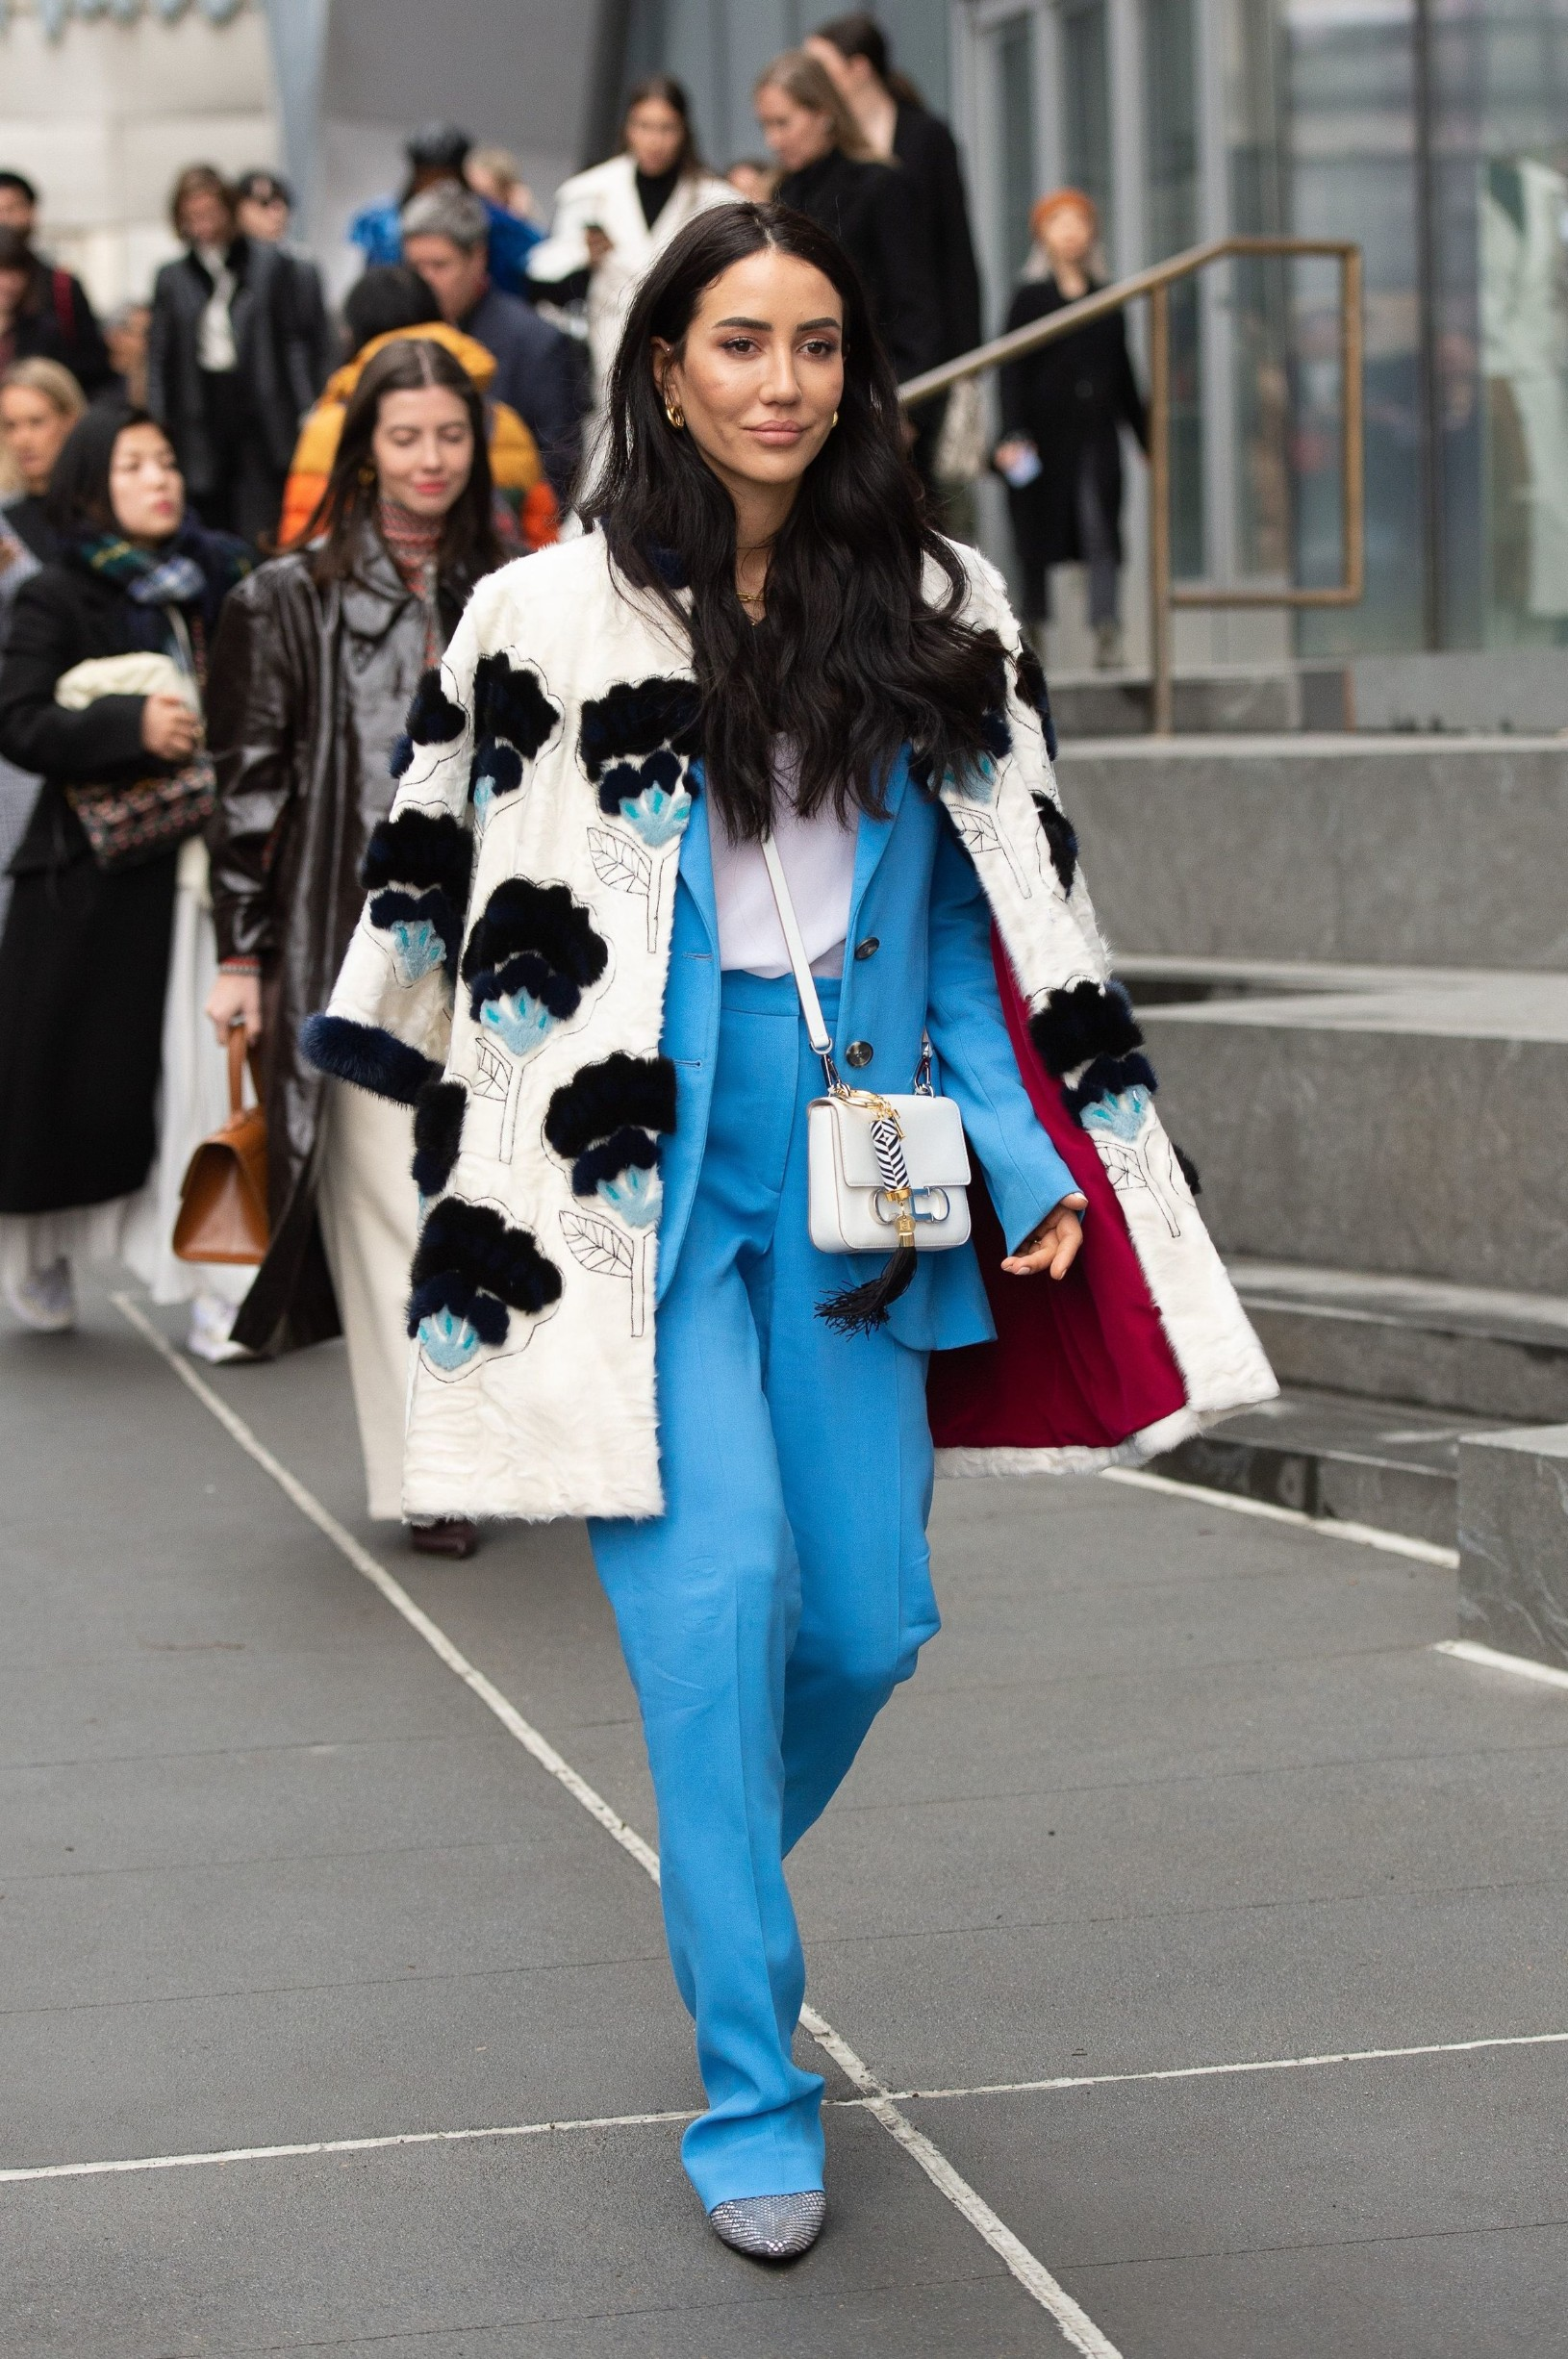 Street Style Street Style, Fall Winter 2020, New York Fashion Week, USA - 10 Feb 2020, Image: 497760488, License: Rights-managed, Restrictions: , Model Release: no, Credit line: ANDREW MORALES/WWD / Shutterstock Editorial / Profimedia